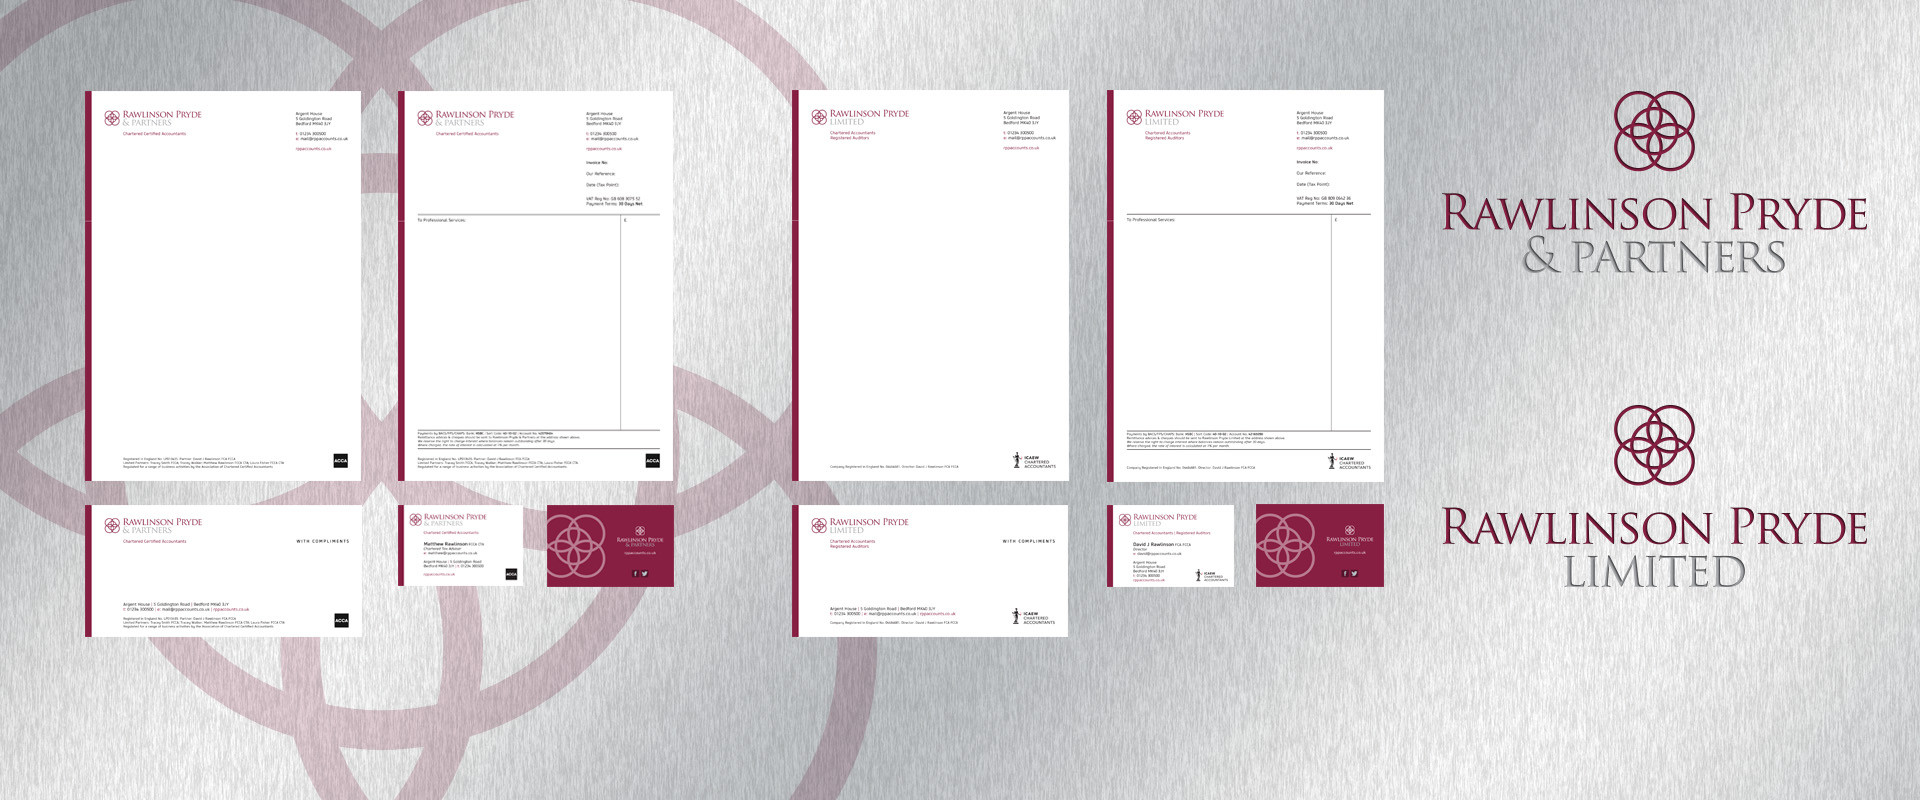 Rawlinson Pryde Corporate Stationery